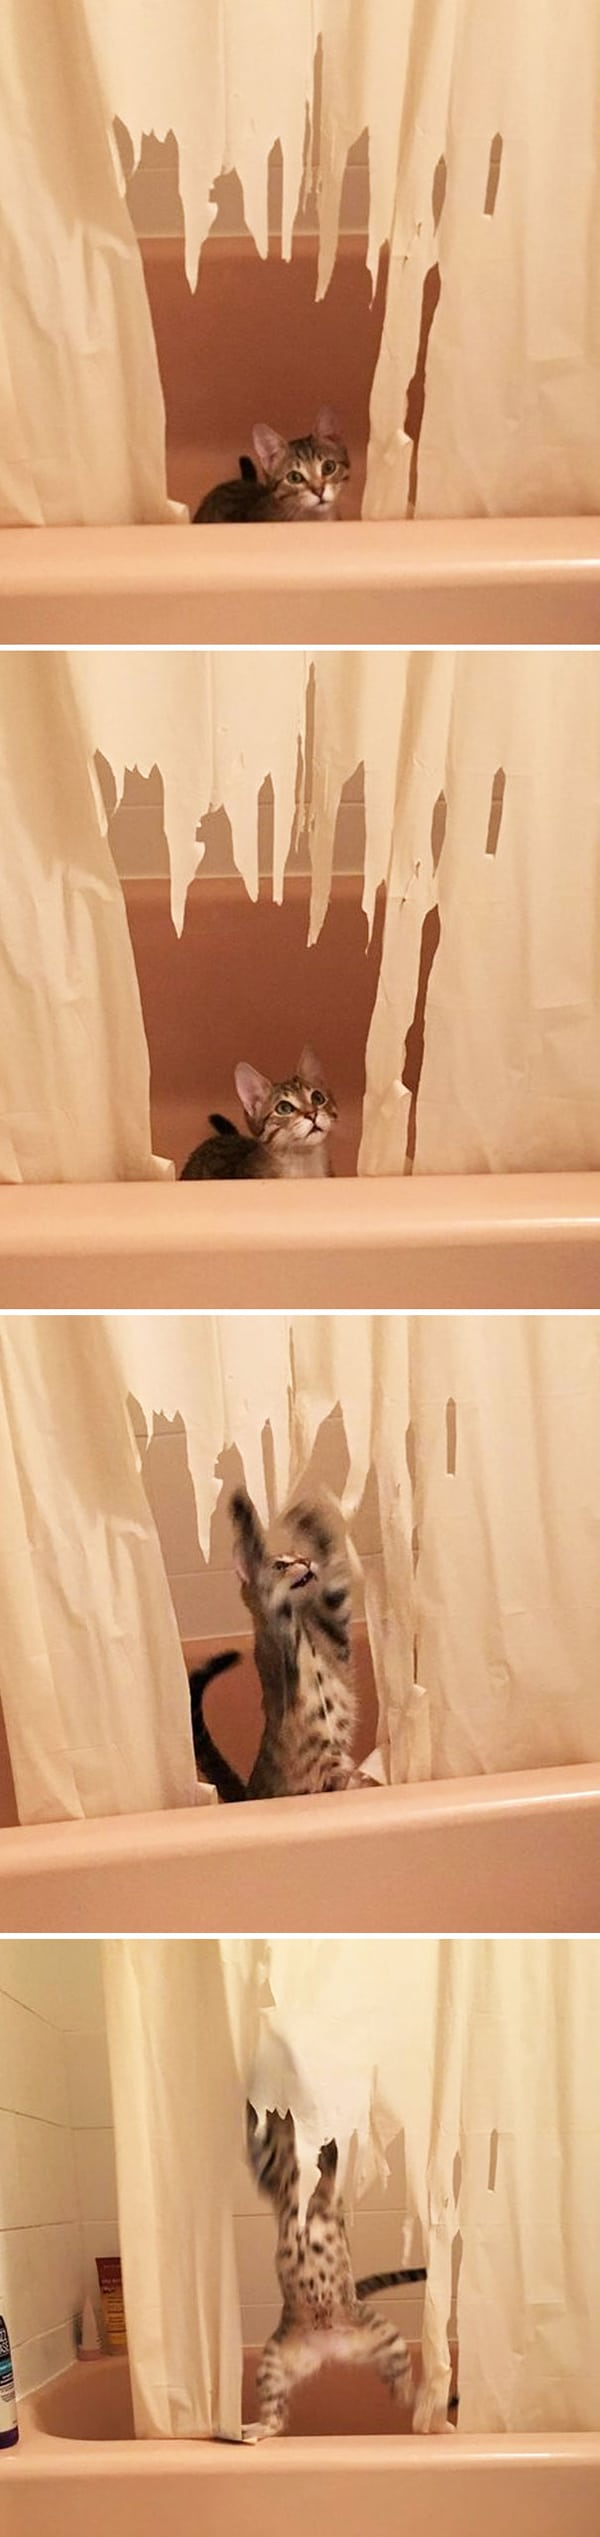 Animals Being Total Jerks ripped shower curtainAnimals Being Total Jerks ripped shower curtain